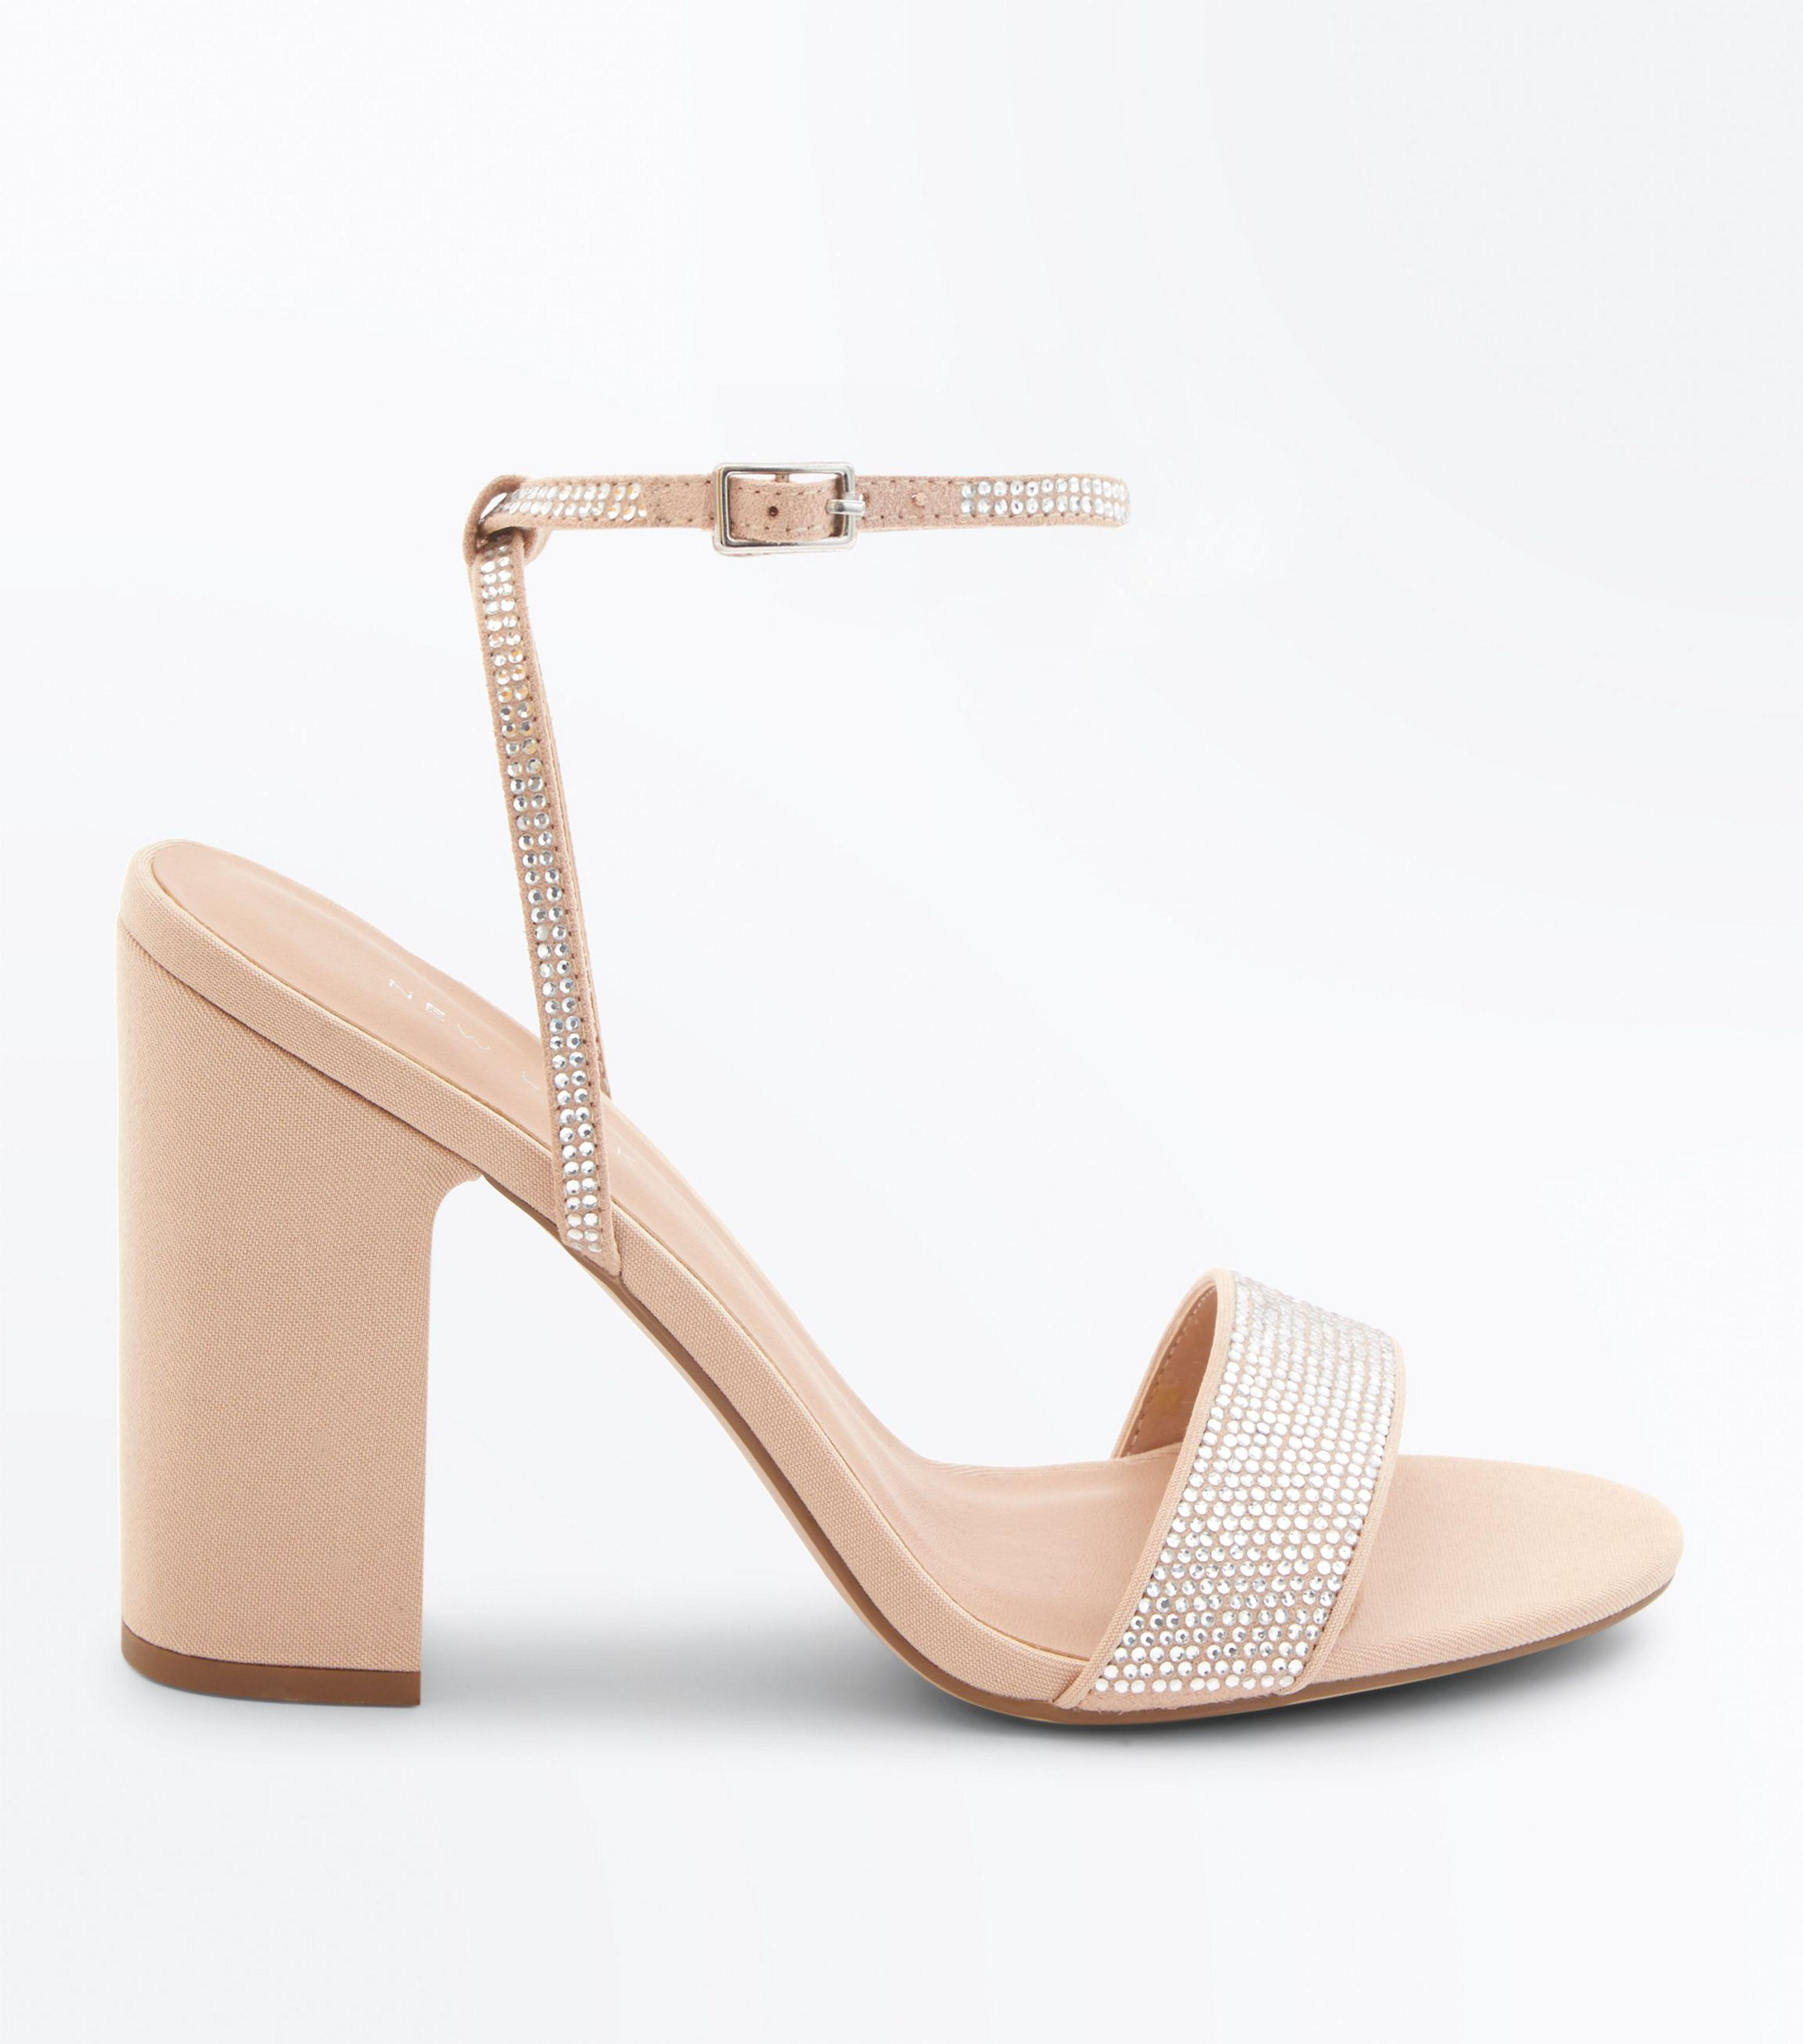 a145f9dc6 New Look Nude Diamanté Strap Block Heeled Sandals in Natural - Lyst